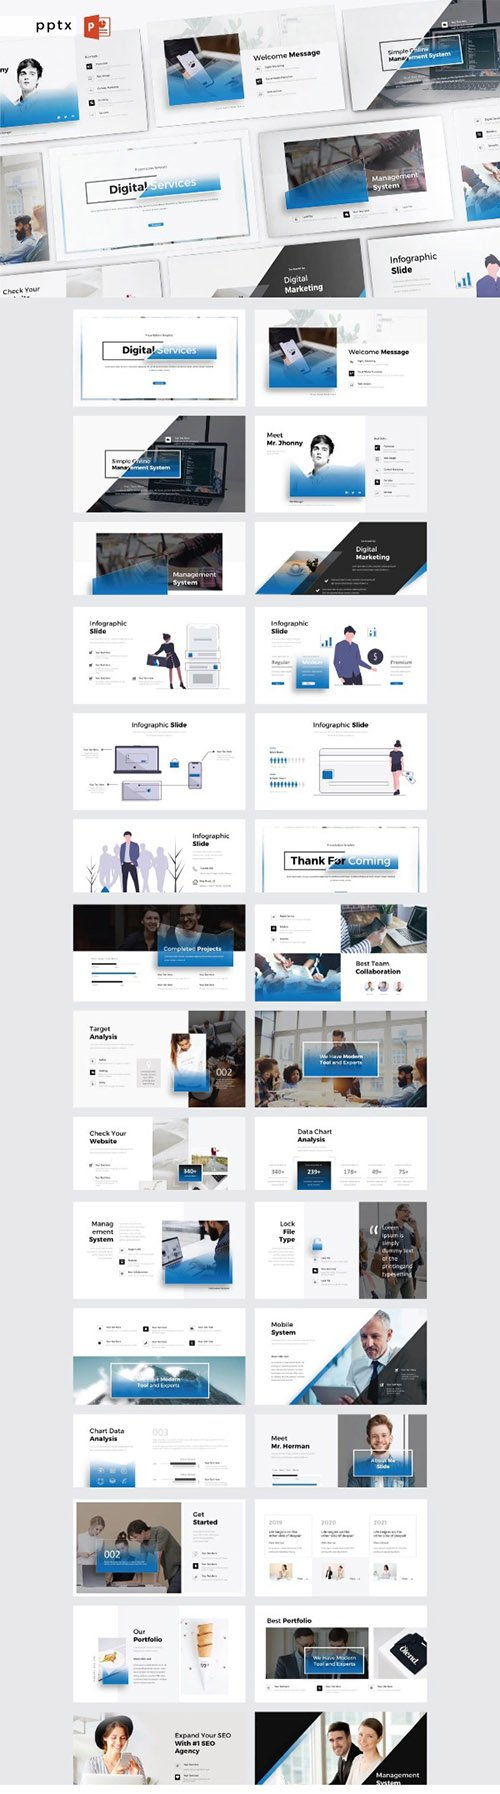 DIGITAL SERVICES - Powerpoint V359